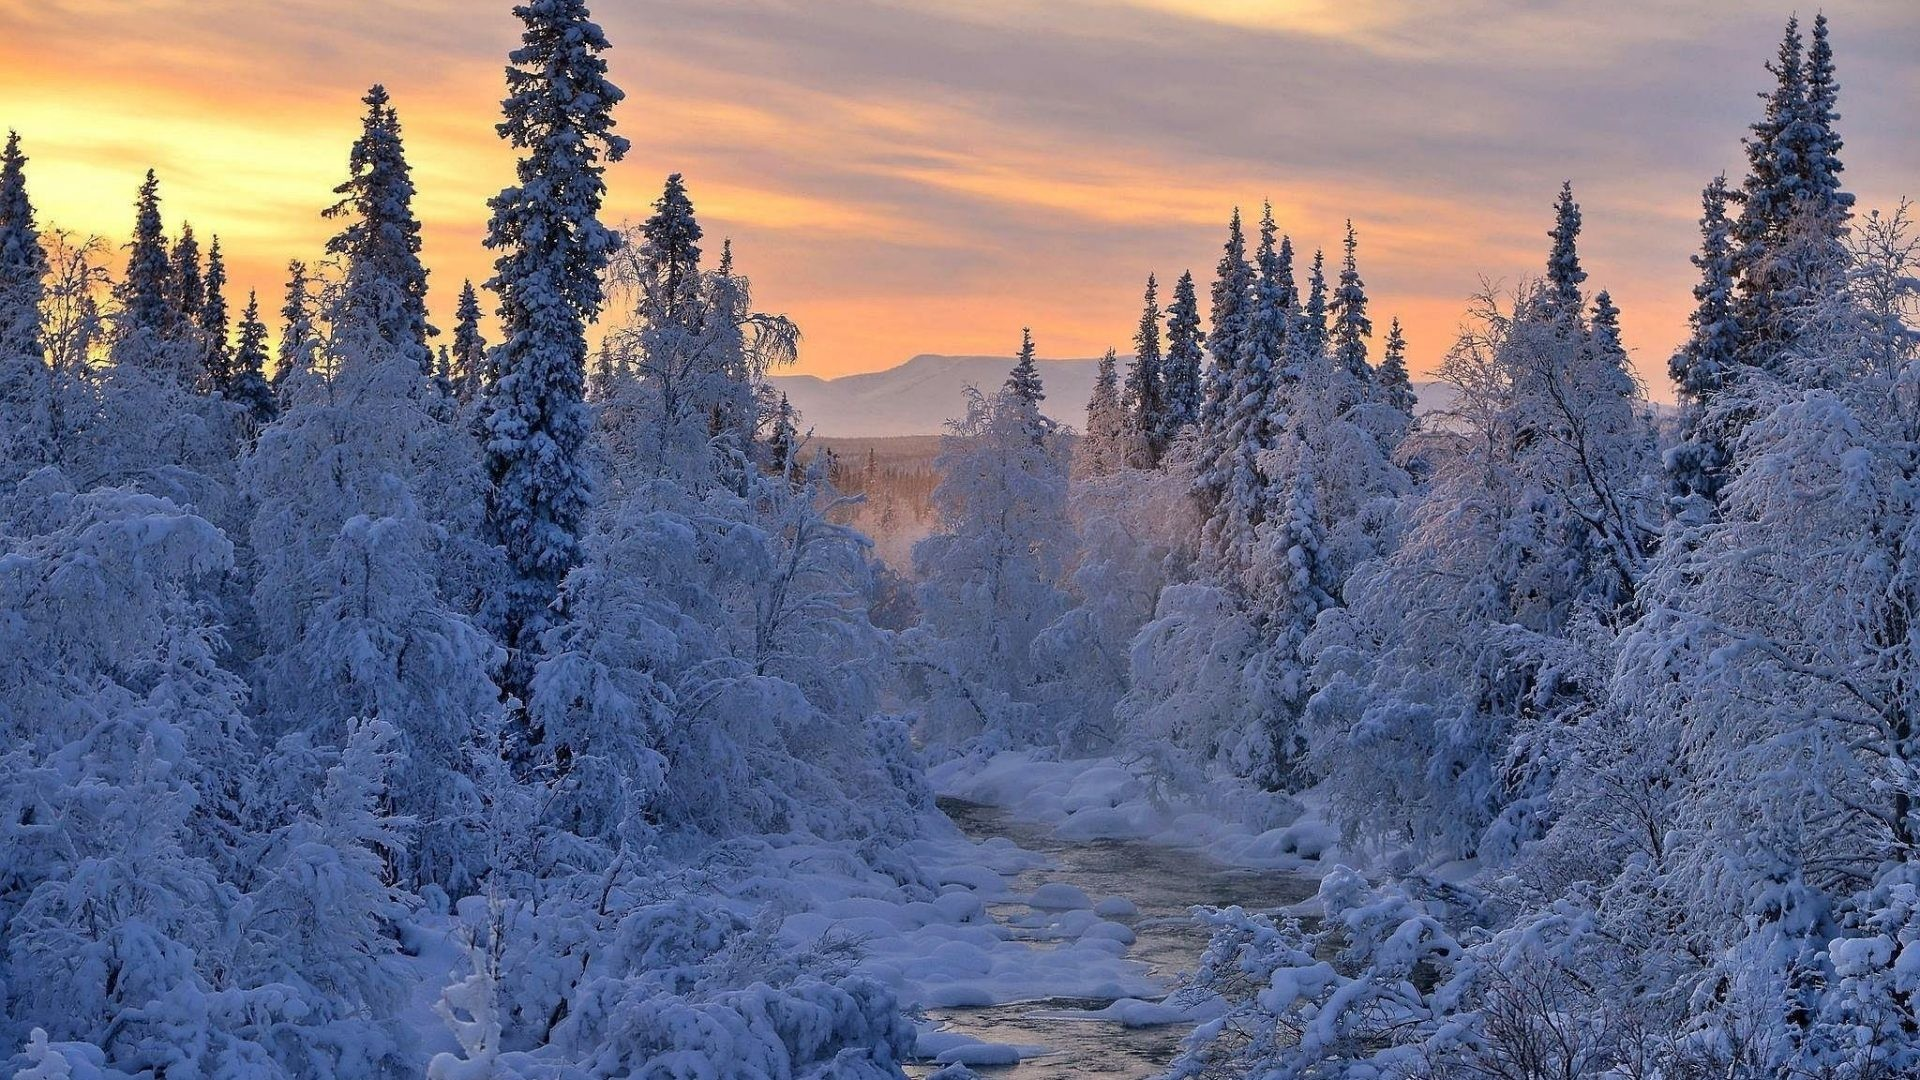 1920x1080 Sunset Tag - Landscape River Winter Sunset Snow Beautiful Nature Hd  Wallpapers Free Download for HD